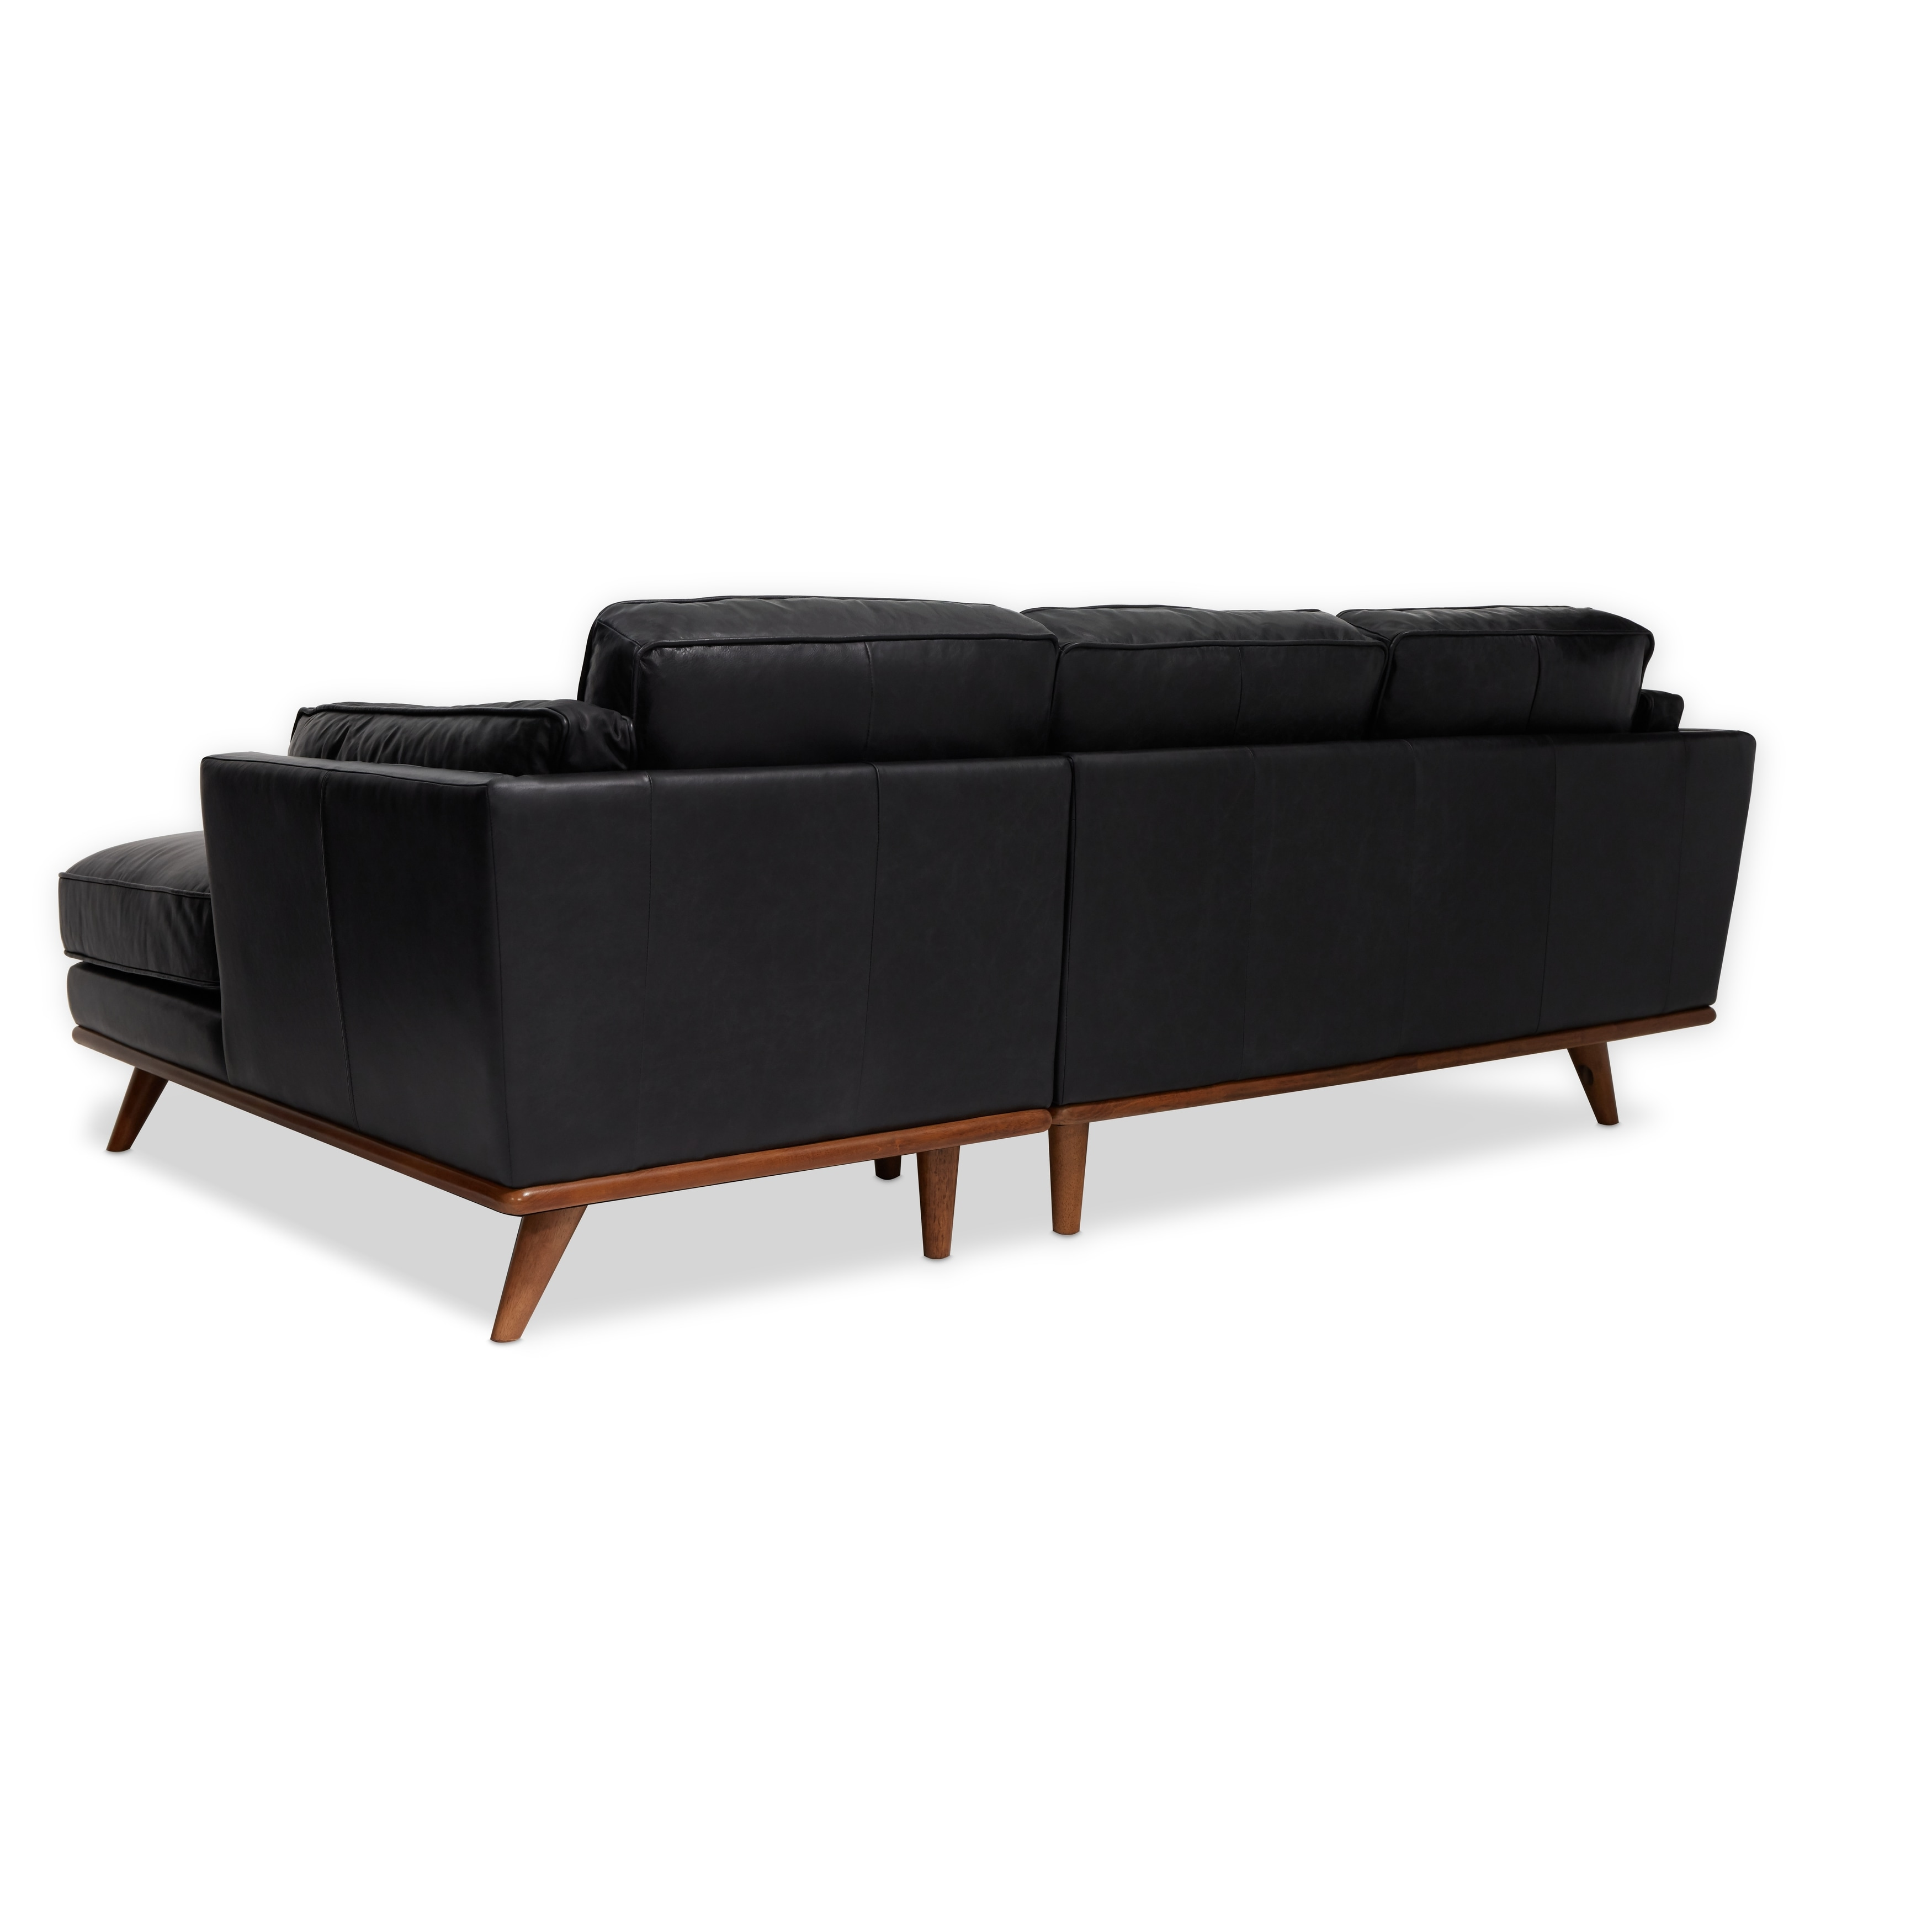 upholstered and black dark contemporary baxton jazz greyson studio fabric tufted grey sectional small leather reversible modern couches